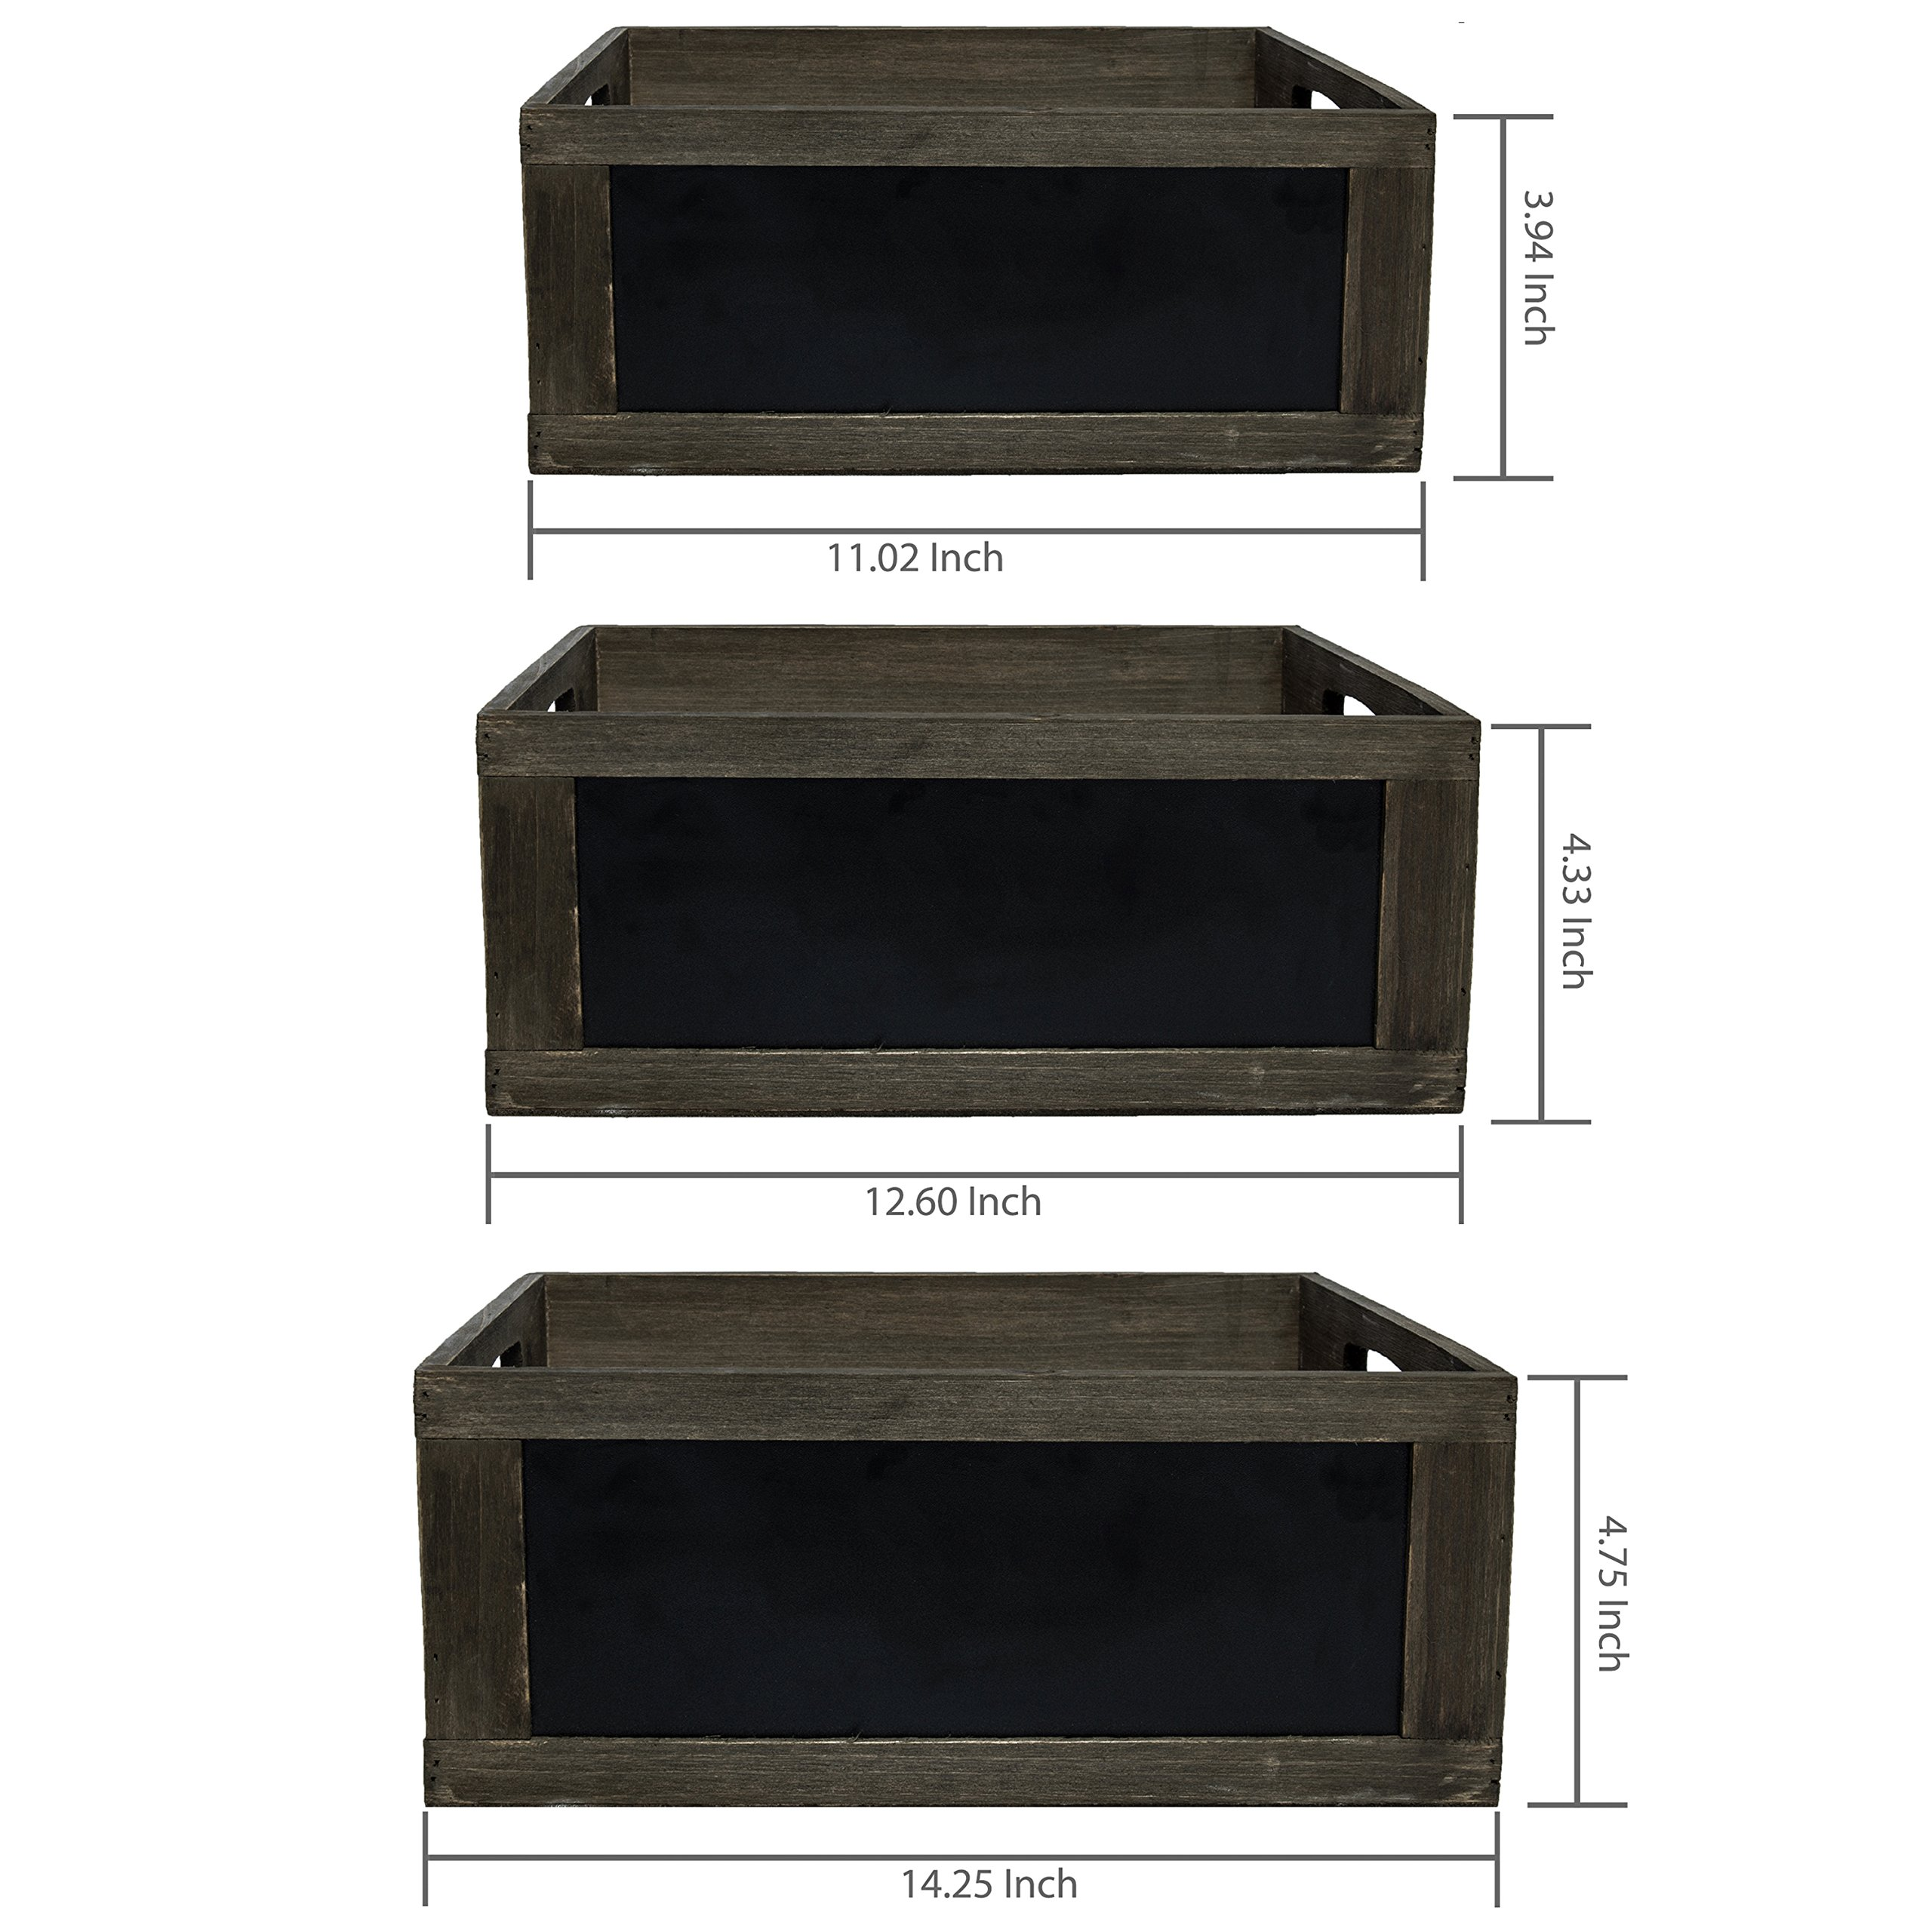 MyGift Rustic Brown Wood Nesting Storage Crates with Chalkboard Front Panel and Cutout Handles, Set of 3 by MyGift (Image #6)